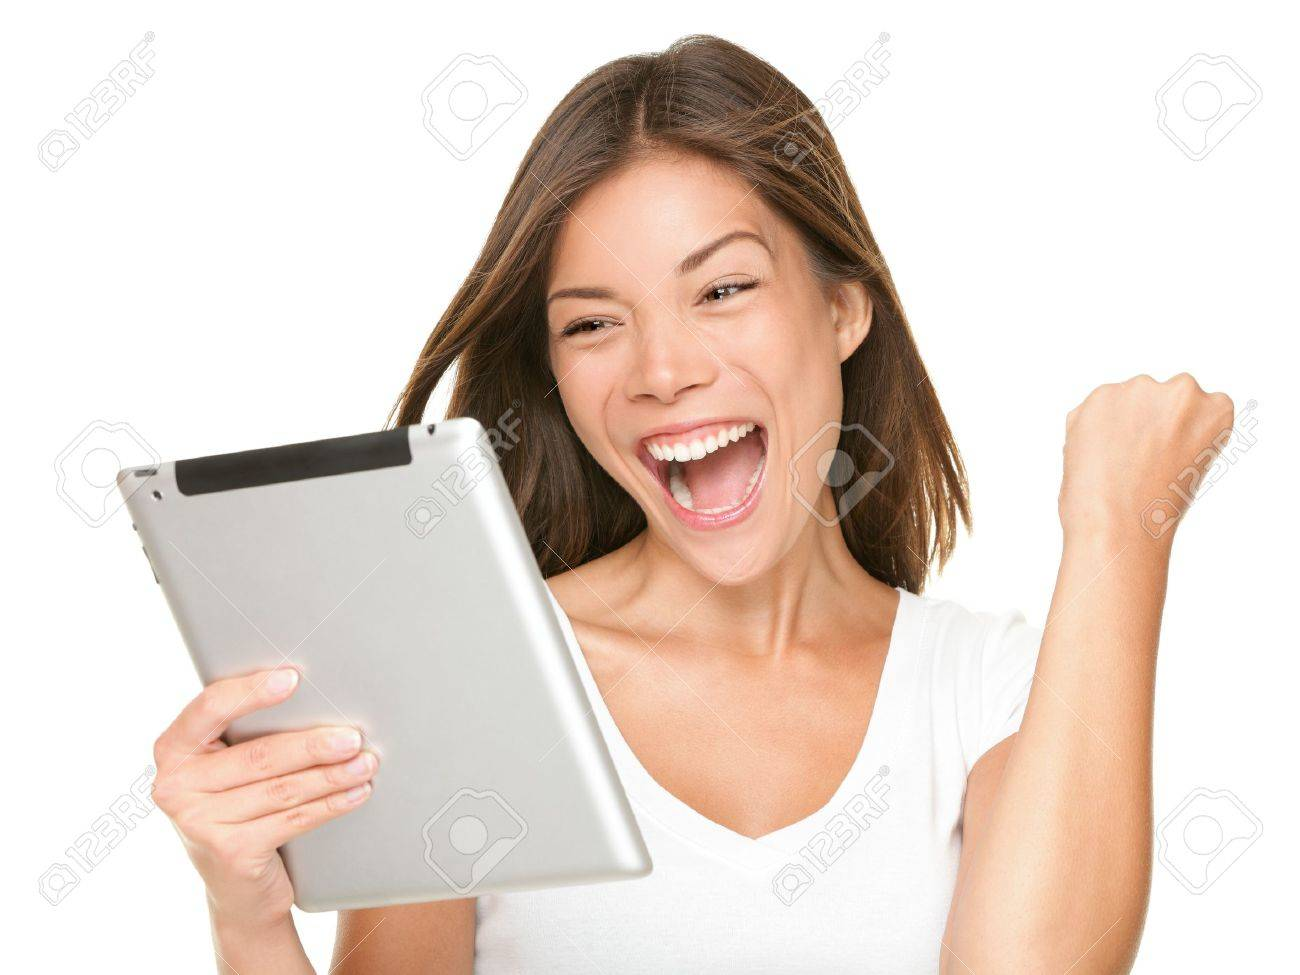 Tablet computer woman excited looking at touch pad pc. Cheerful happy fresh Asian Caucasian female model. Stock Photo - 9952956